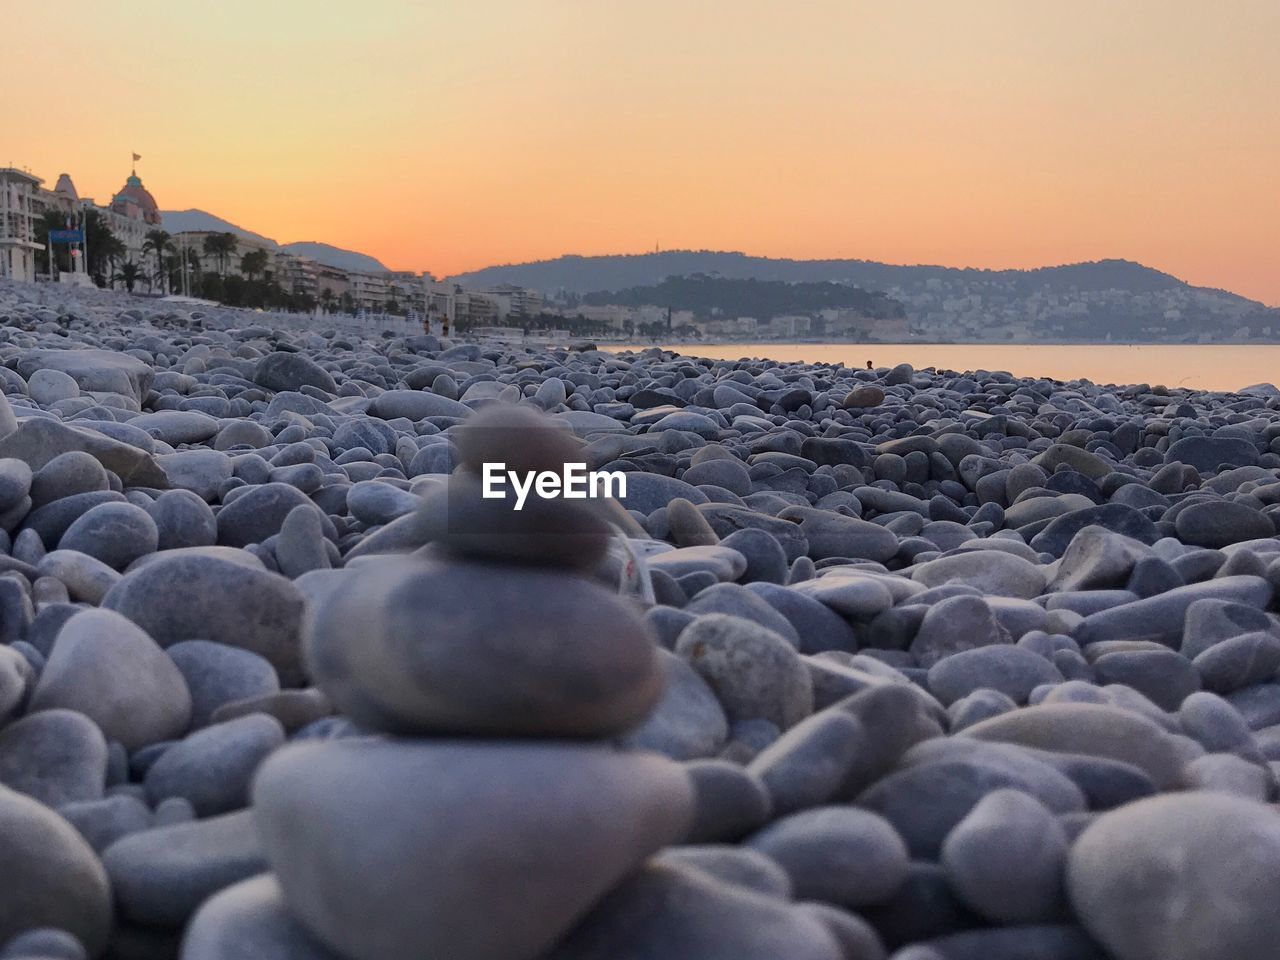 sunset, sky, rock, beach, stone, pebble, solid, land, stone - object, tranquil scene, nature, tranquility, zen-like, beauty in nature, scenics - nature, water, rock - object, sea, stack, balance, no people, outdoors, surface level